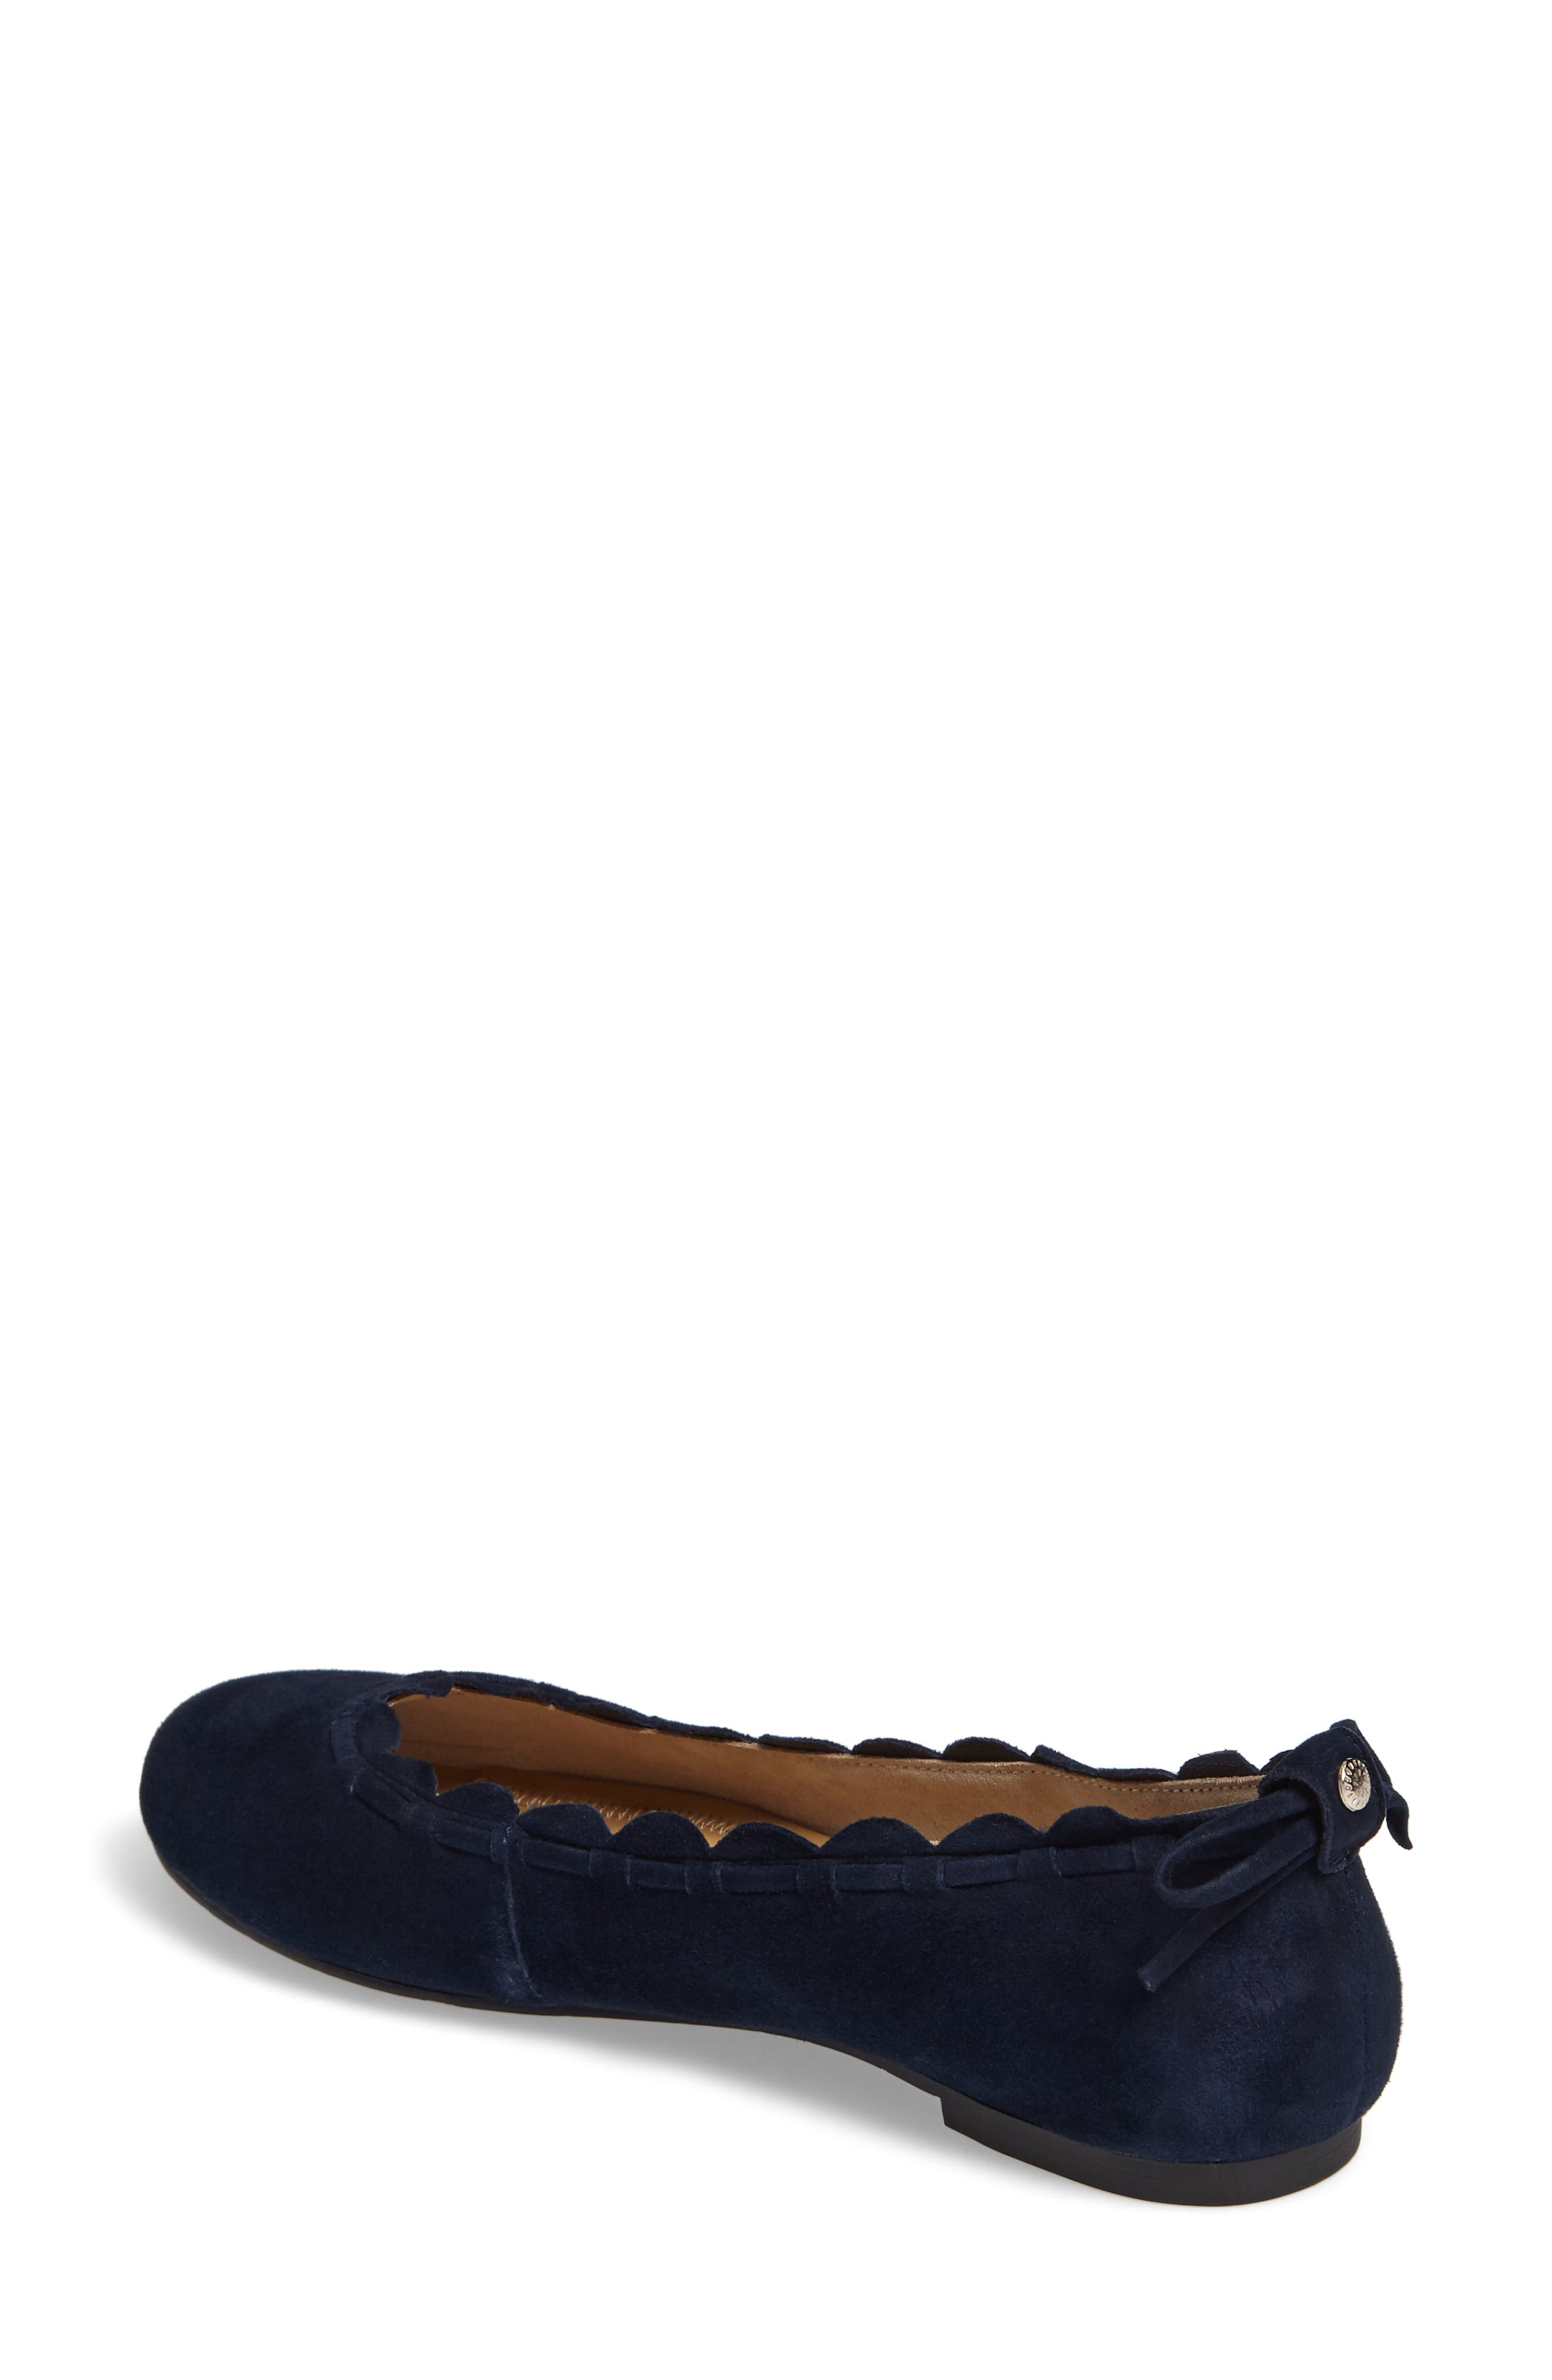 Alternate Image 2  - Jack Rogers Lucie Scalloped Flat (Women)